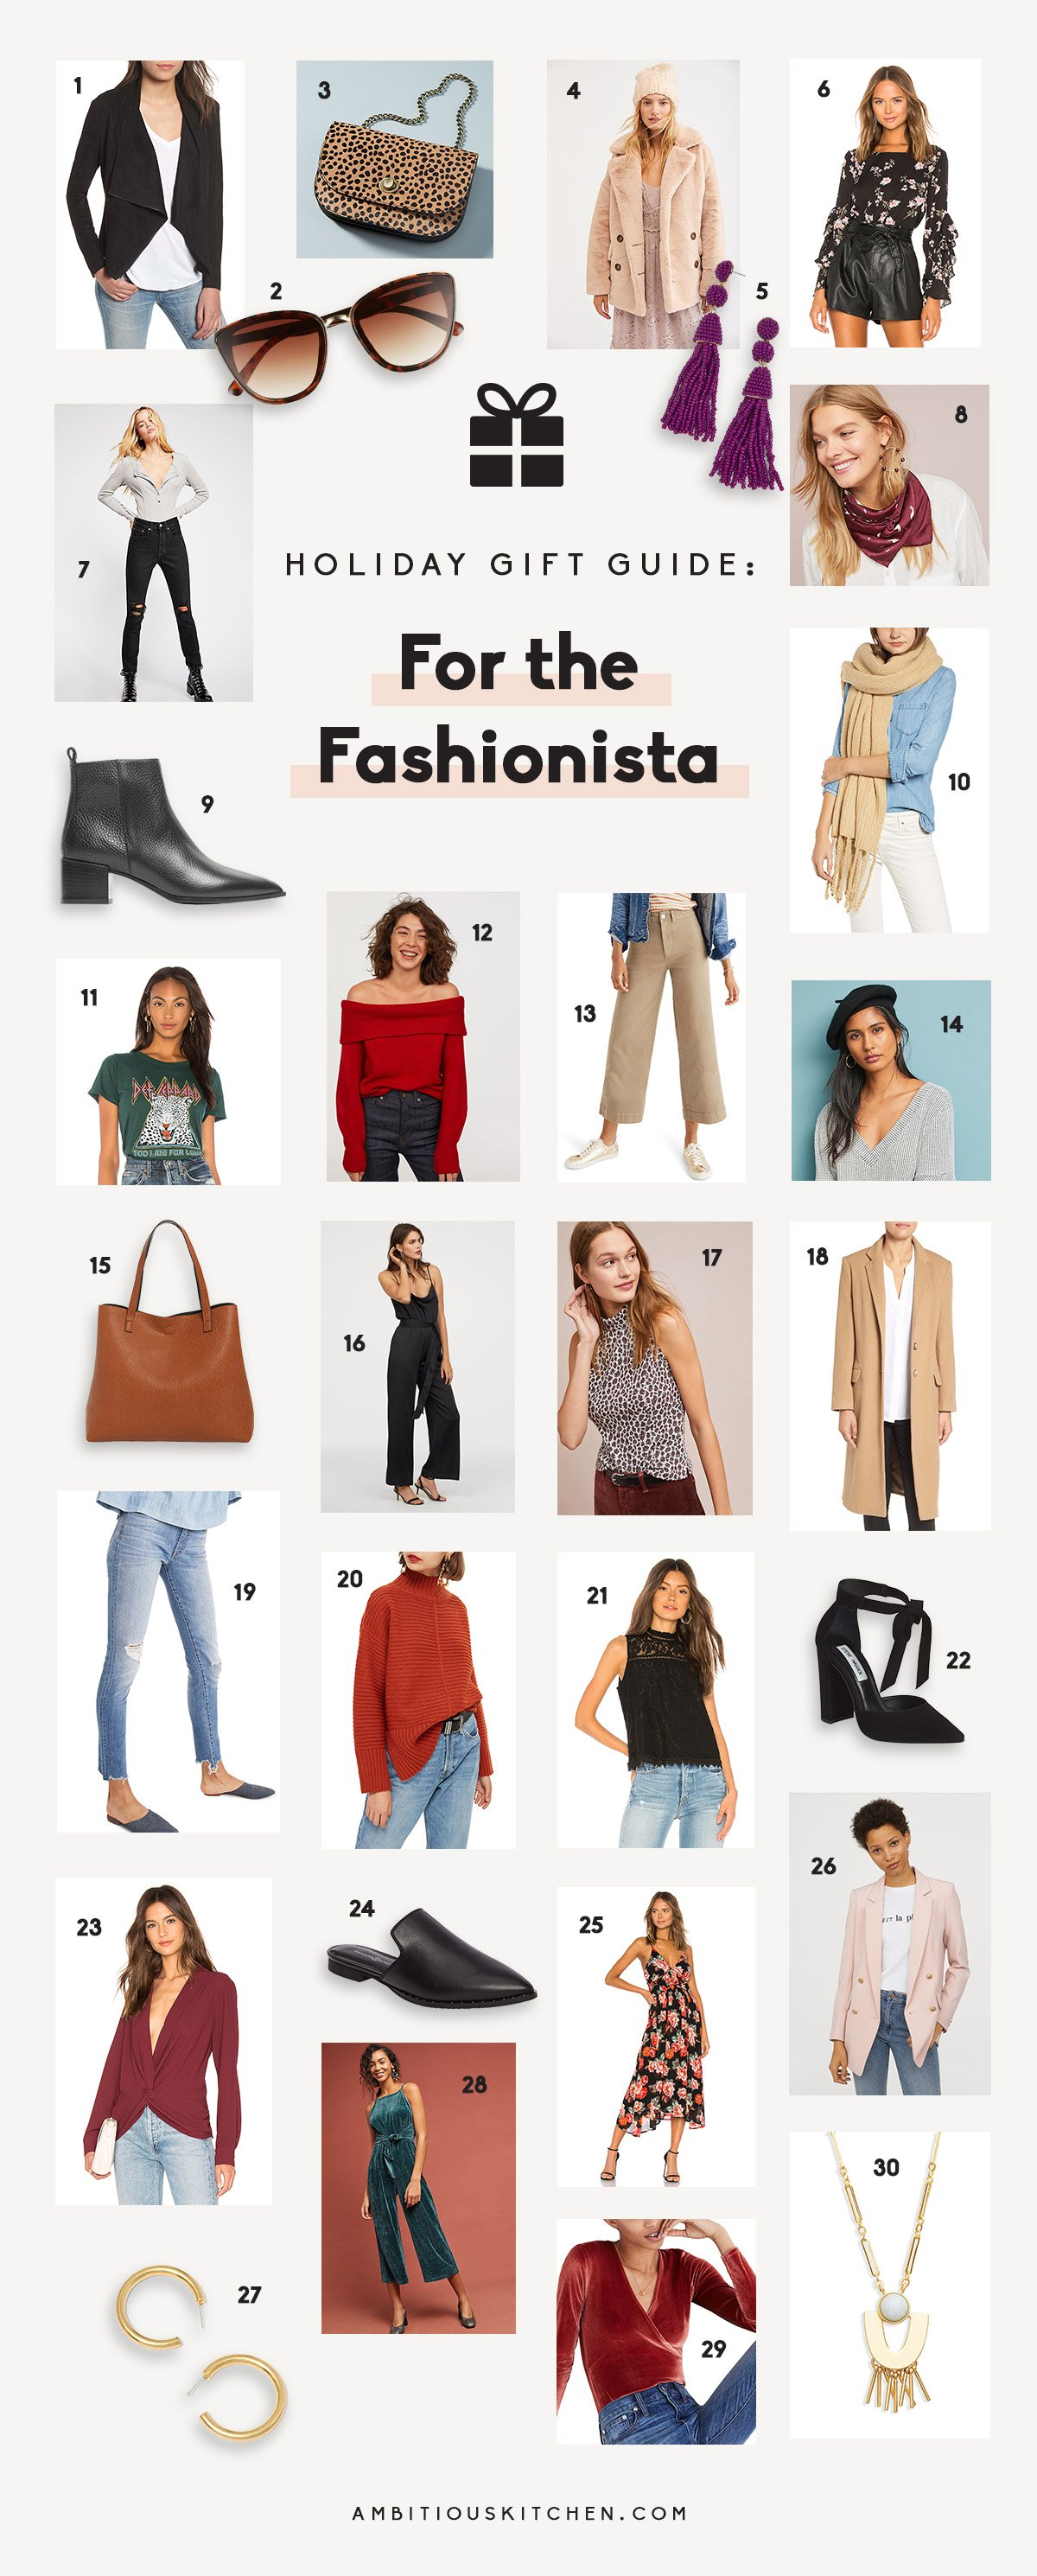 f7bc90c8559 30 incredible gifts for the fashionistas in your life! Whether she s  looking to add a